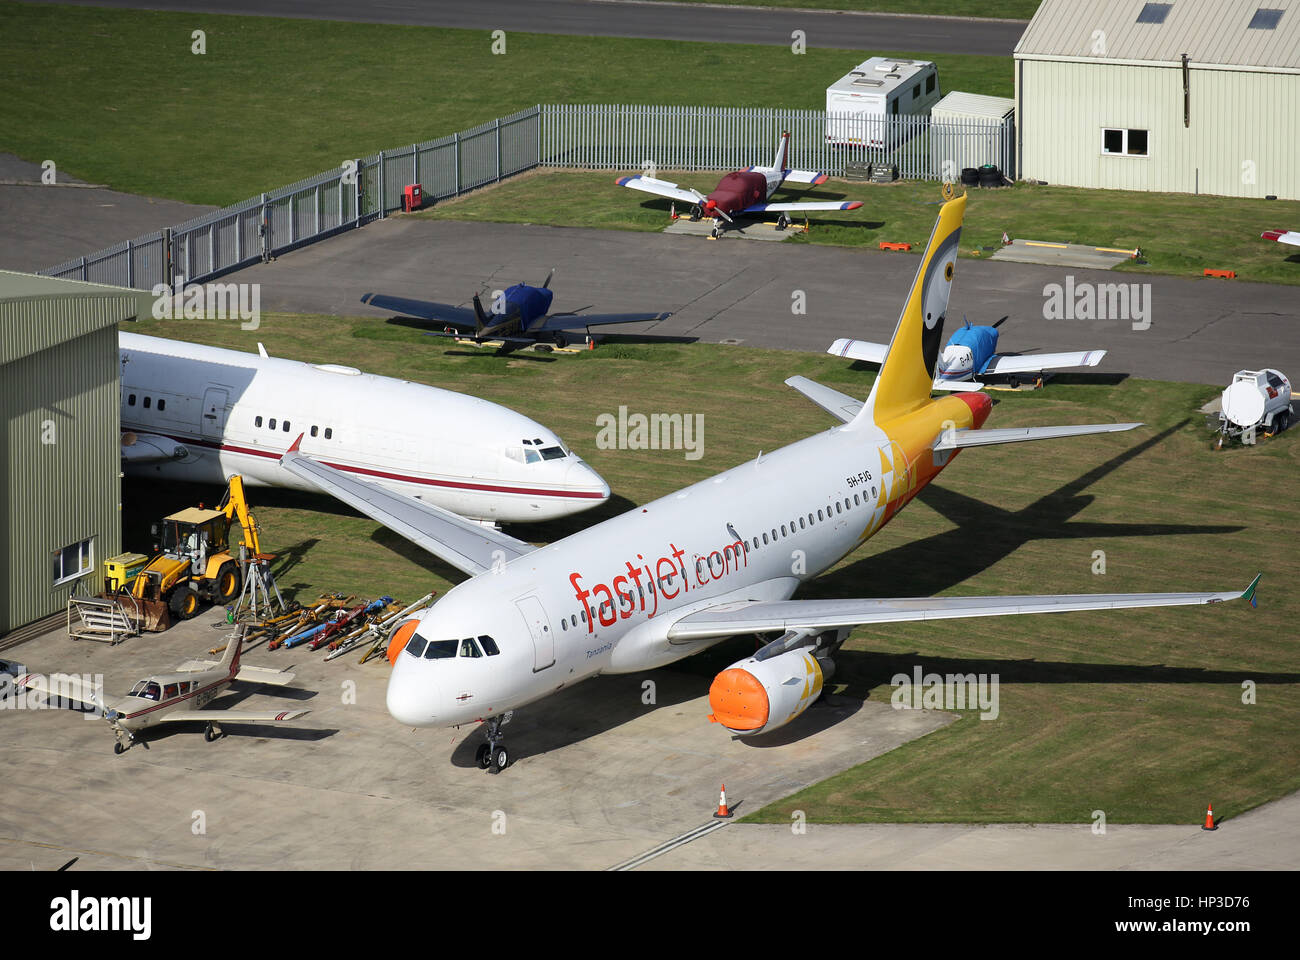 An aircraft from the East African airline, Fastjet, at Kemble - Stock Image